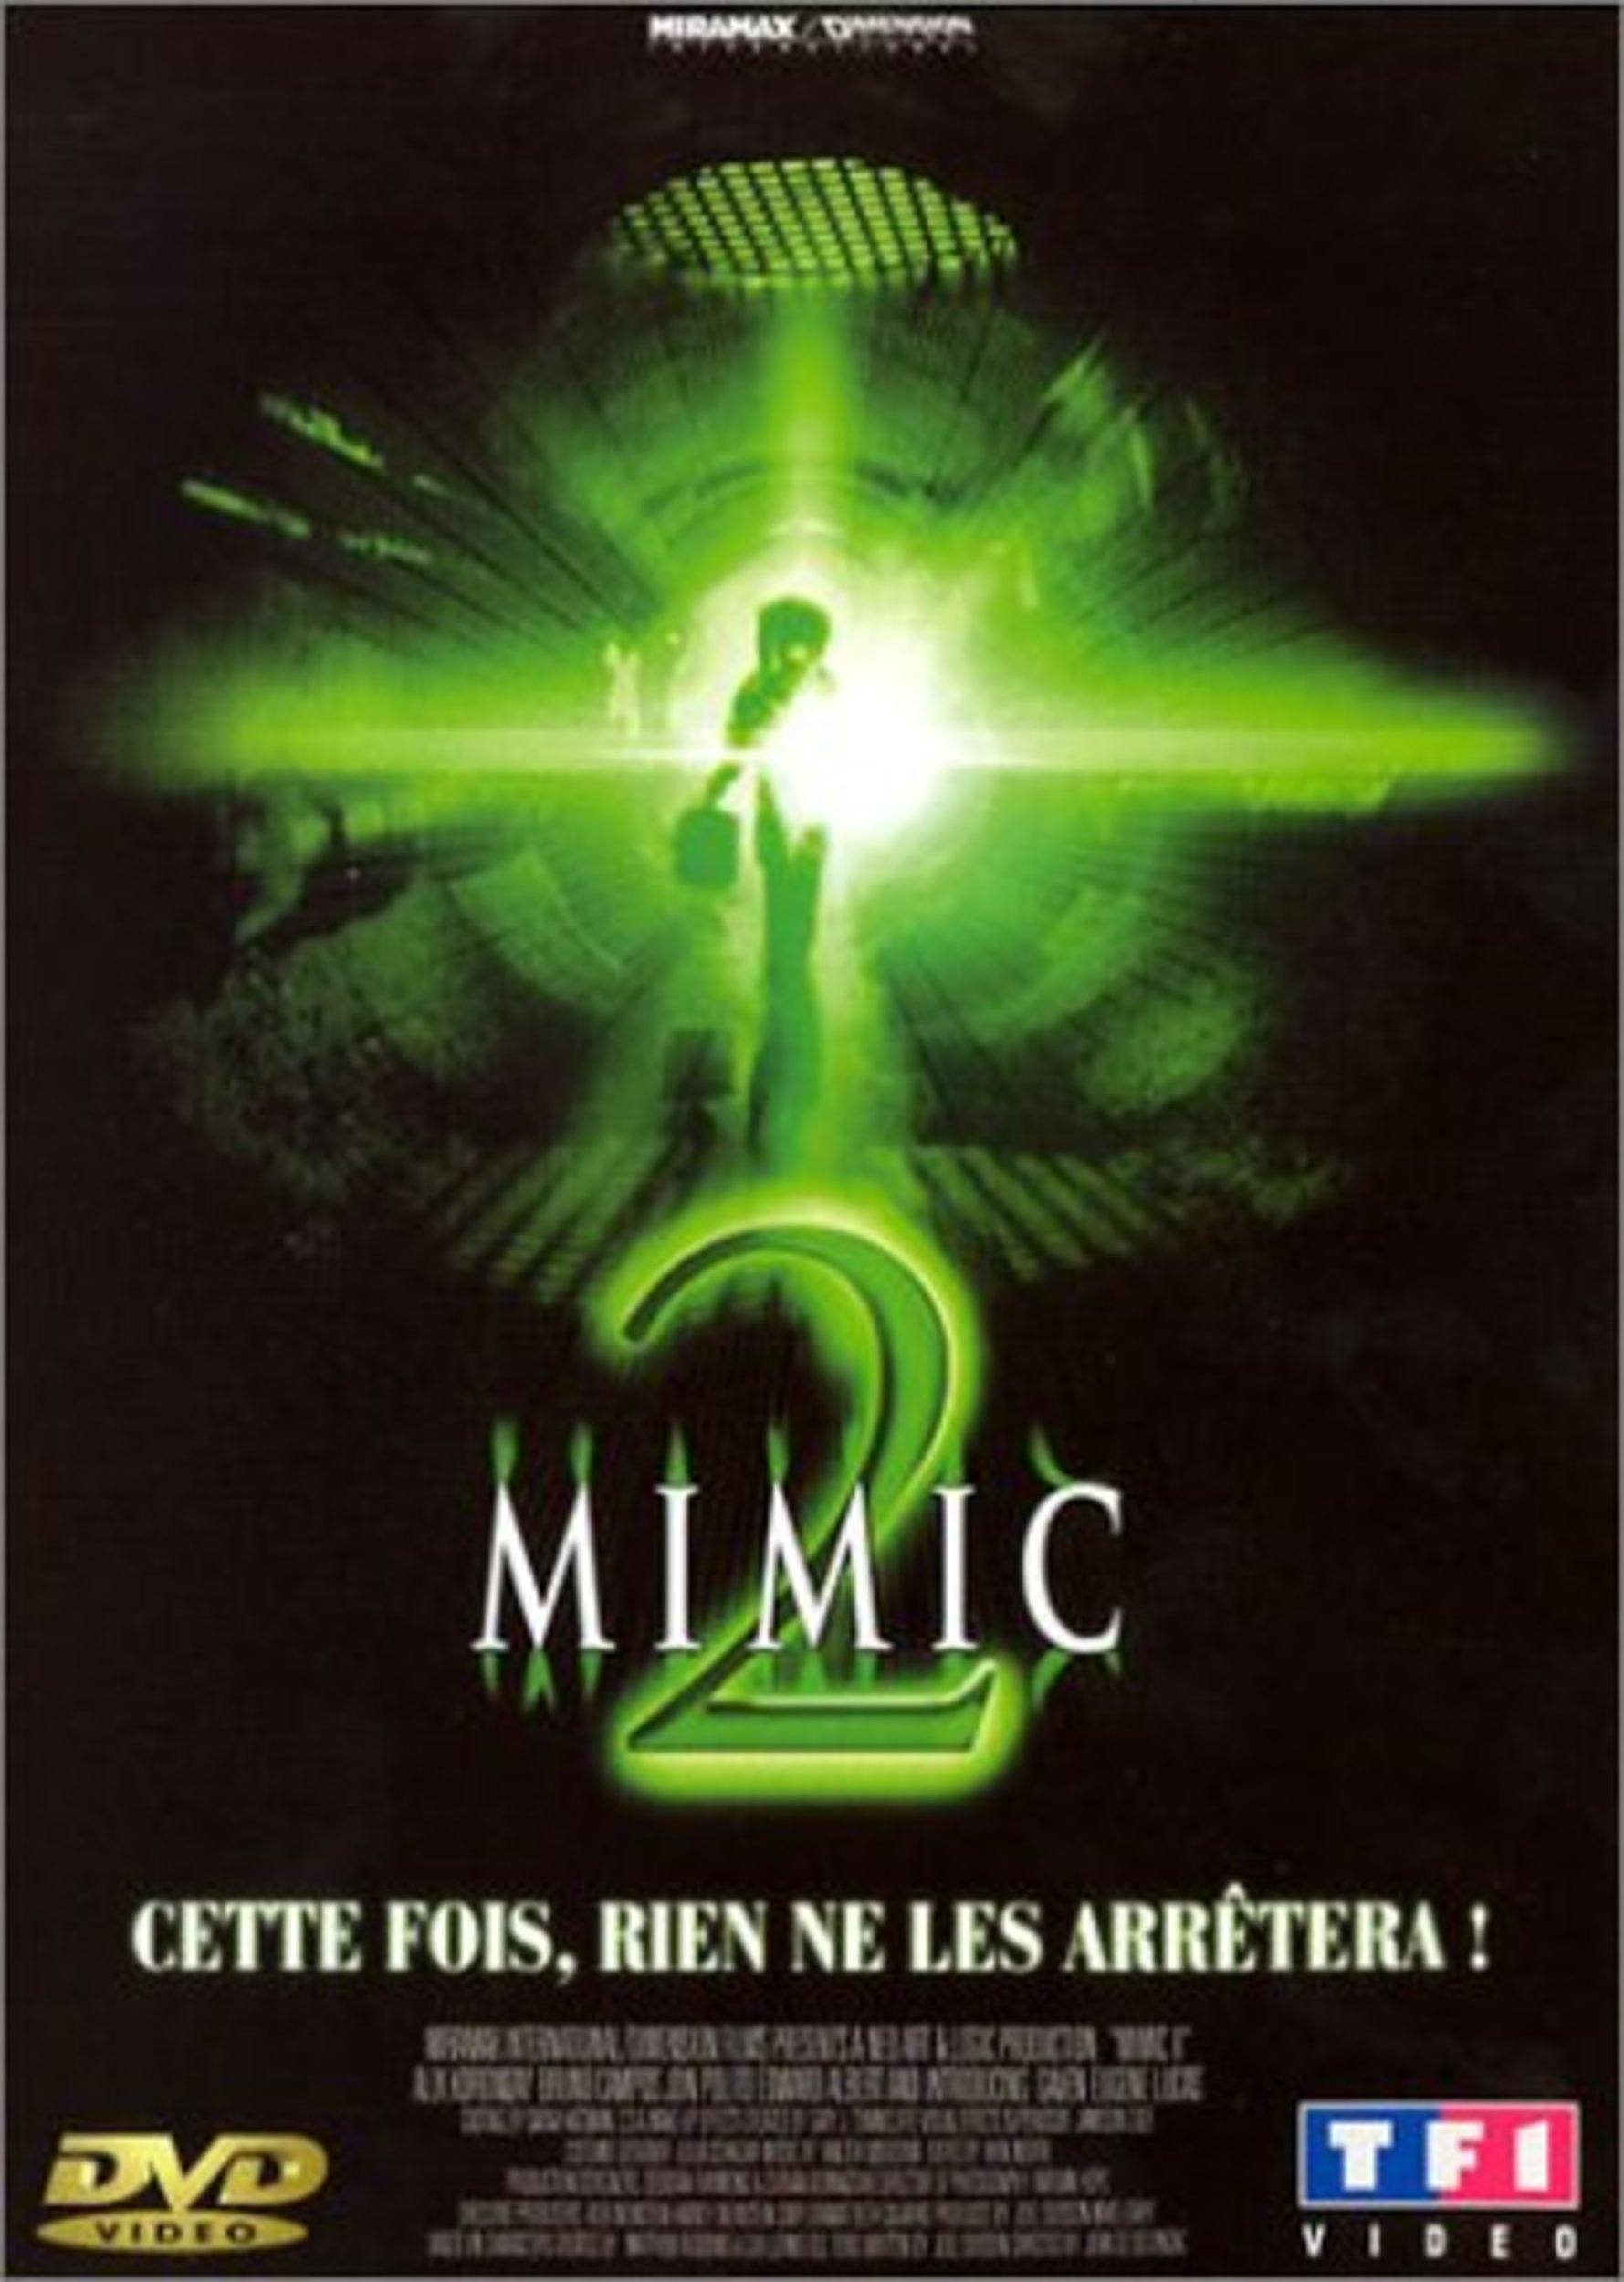 affiche poster mimic 2 retour disney dimension